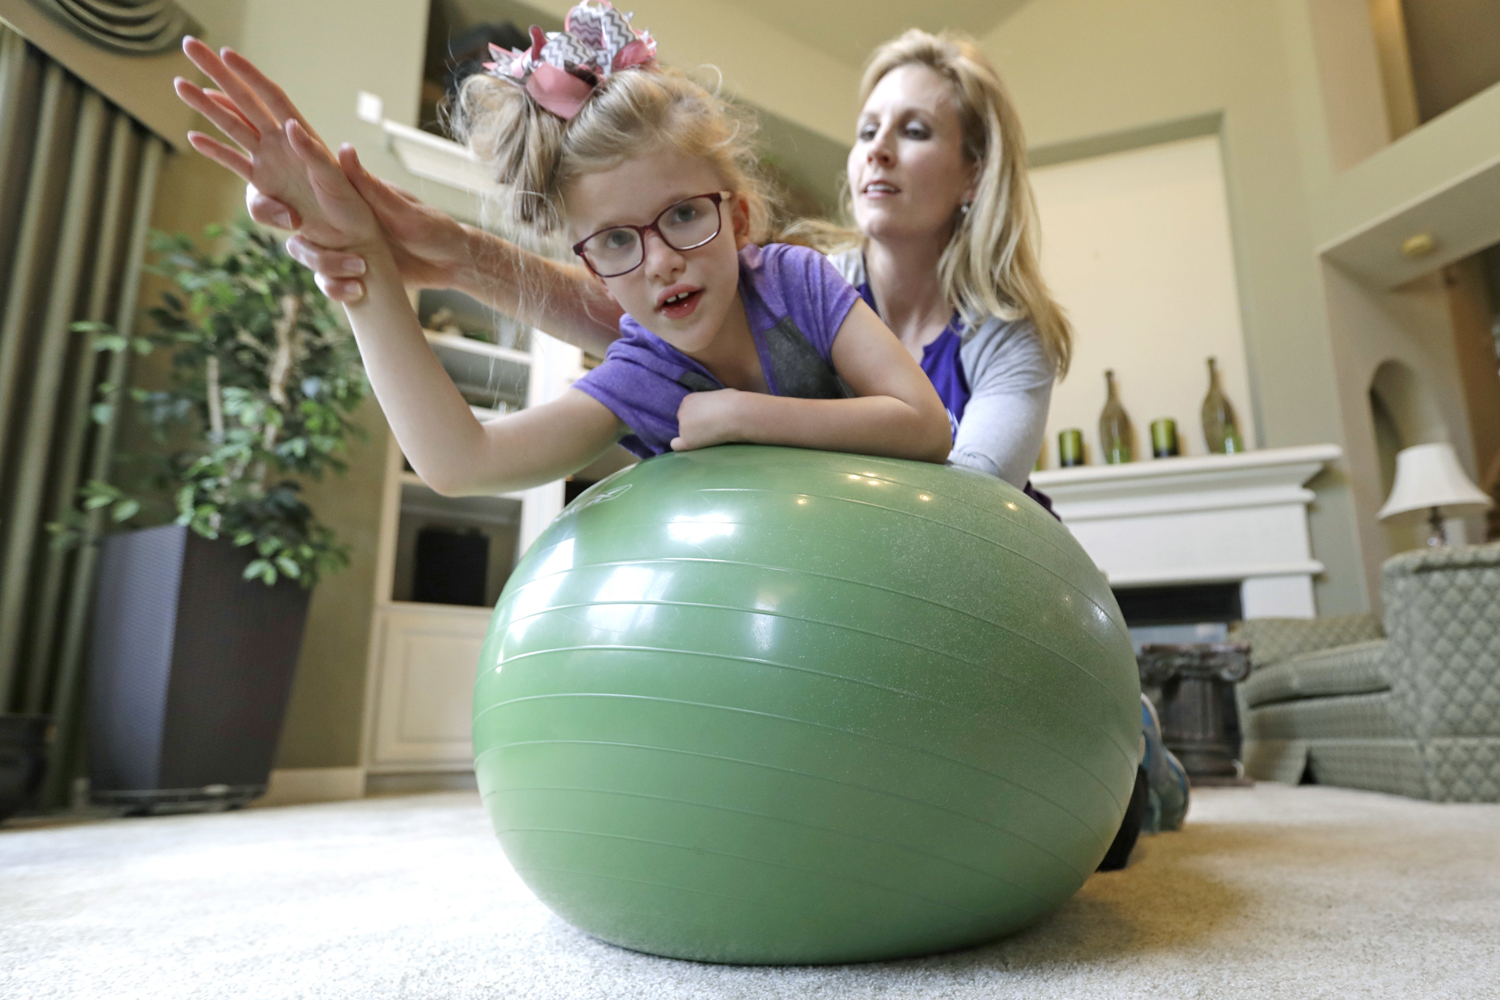 Stacey English, right, works on balance and core strength with her 7-year-old daughter, Addison, in Houston on Friday, June 23, 2017. Texas children with special needs like Addison have lost critical services since the state implemented $350 million in Medicaid cuts to speech, occupational, and physical therapy in December. (David J. Phillip/AP)